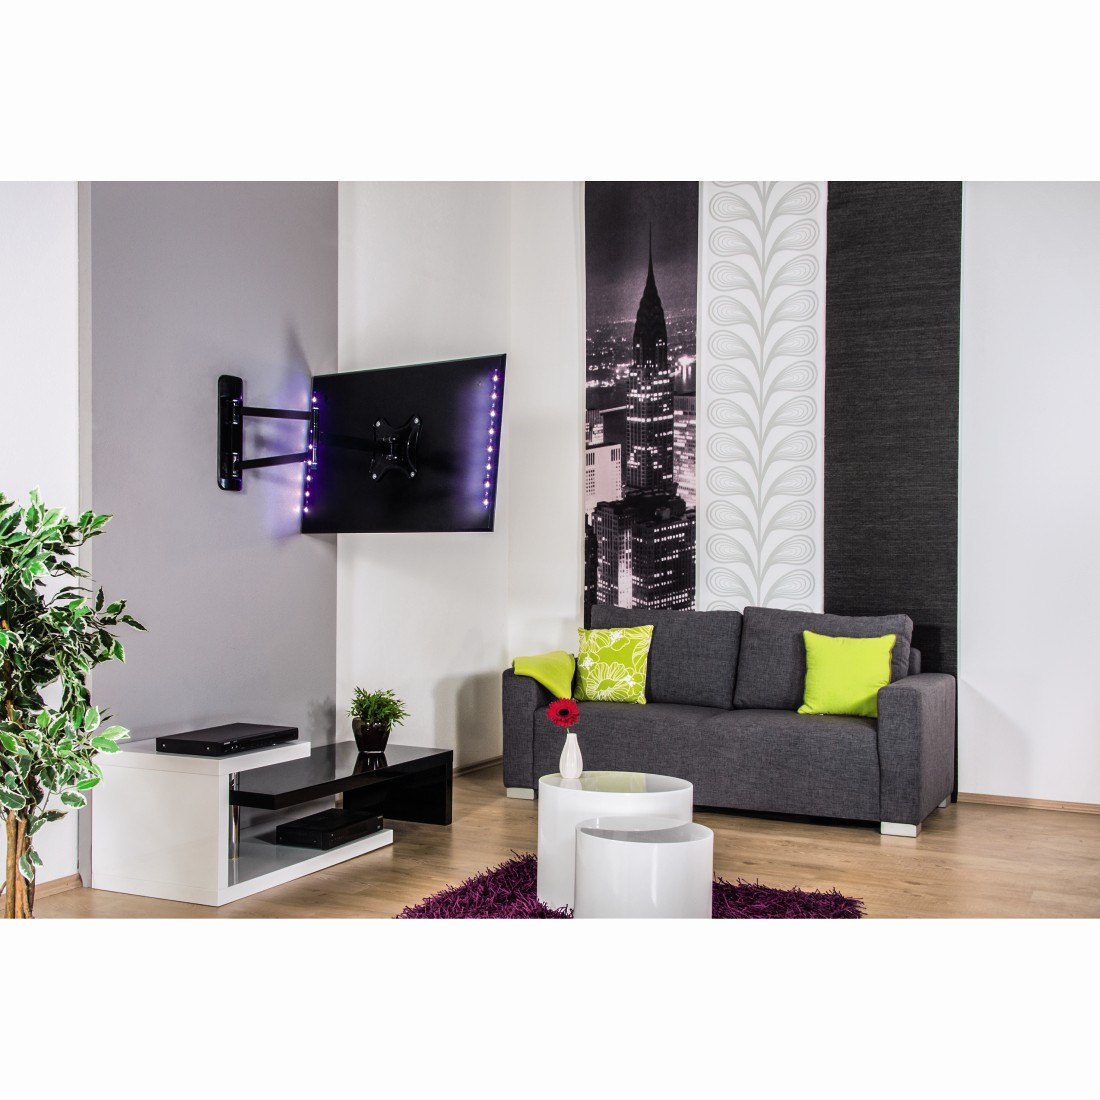 awx7 Druckfähige Anwendung 7 - Hama, LED-Band TV-Relax mit USB-Anschluss, RGB, 2x 50 cm